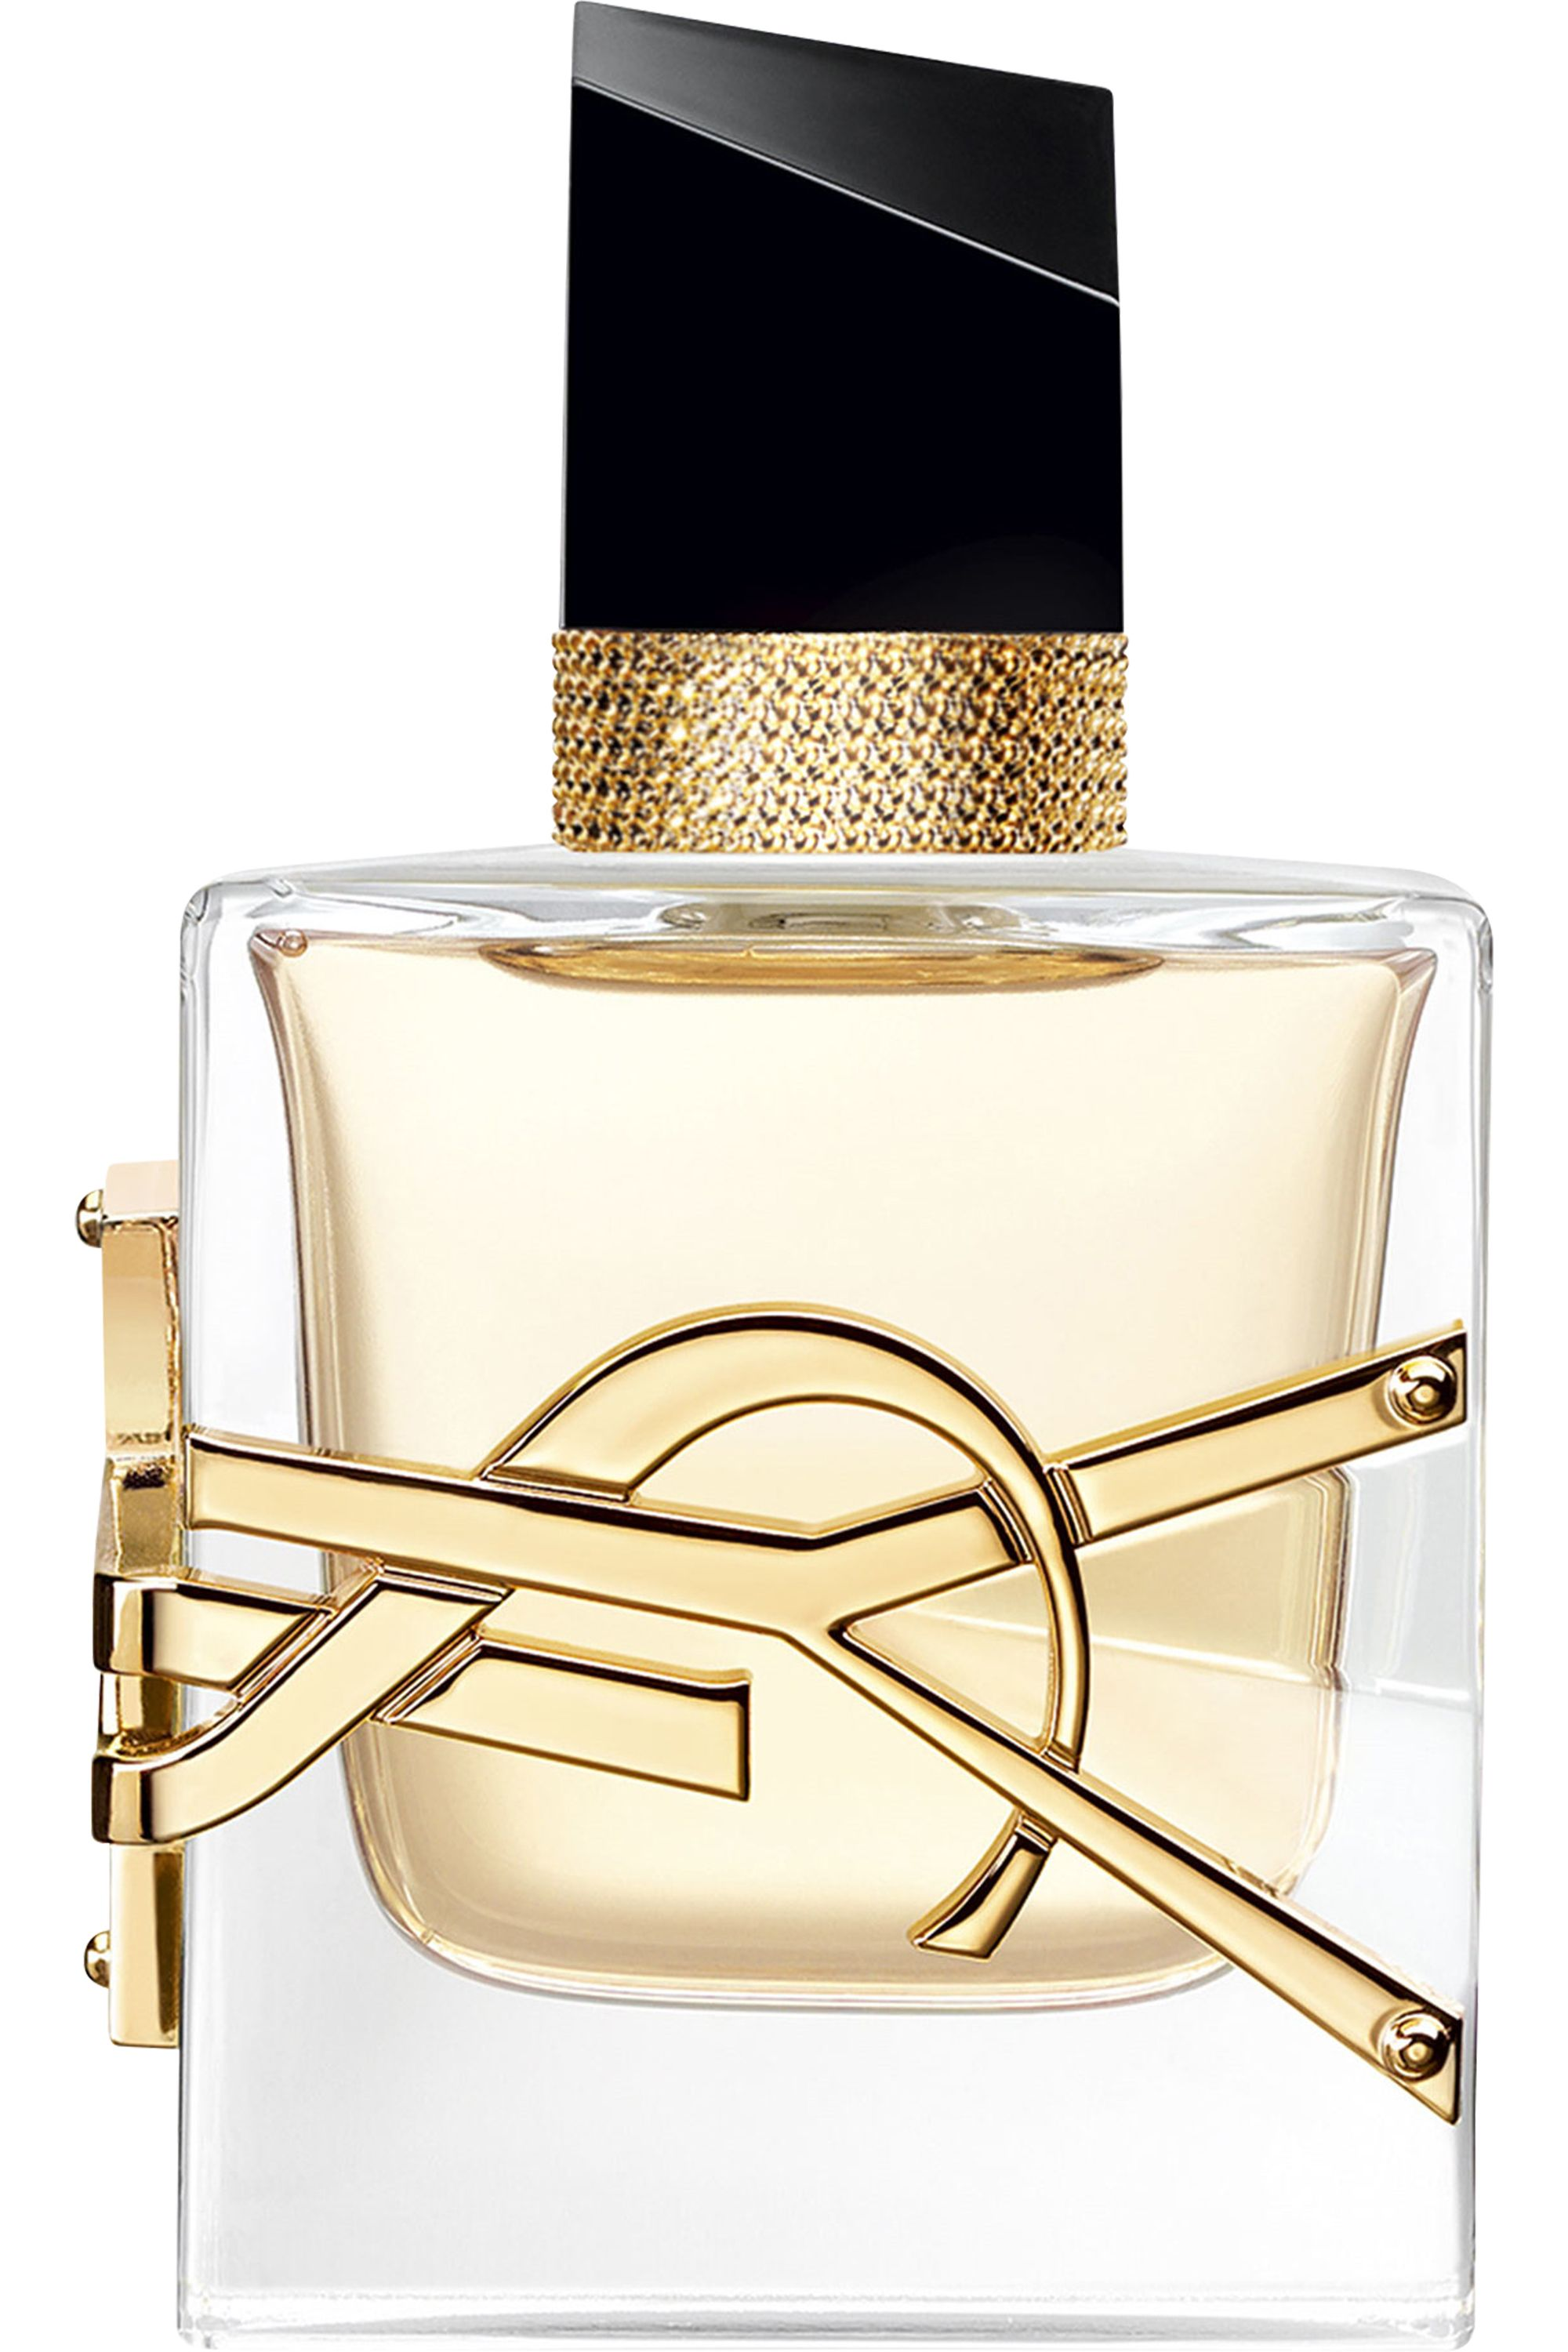 Blissim : Yves Saint Laurent - Libre Eau de Parfum - 30 ml